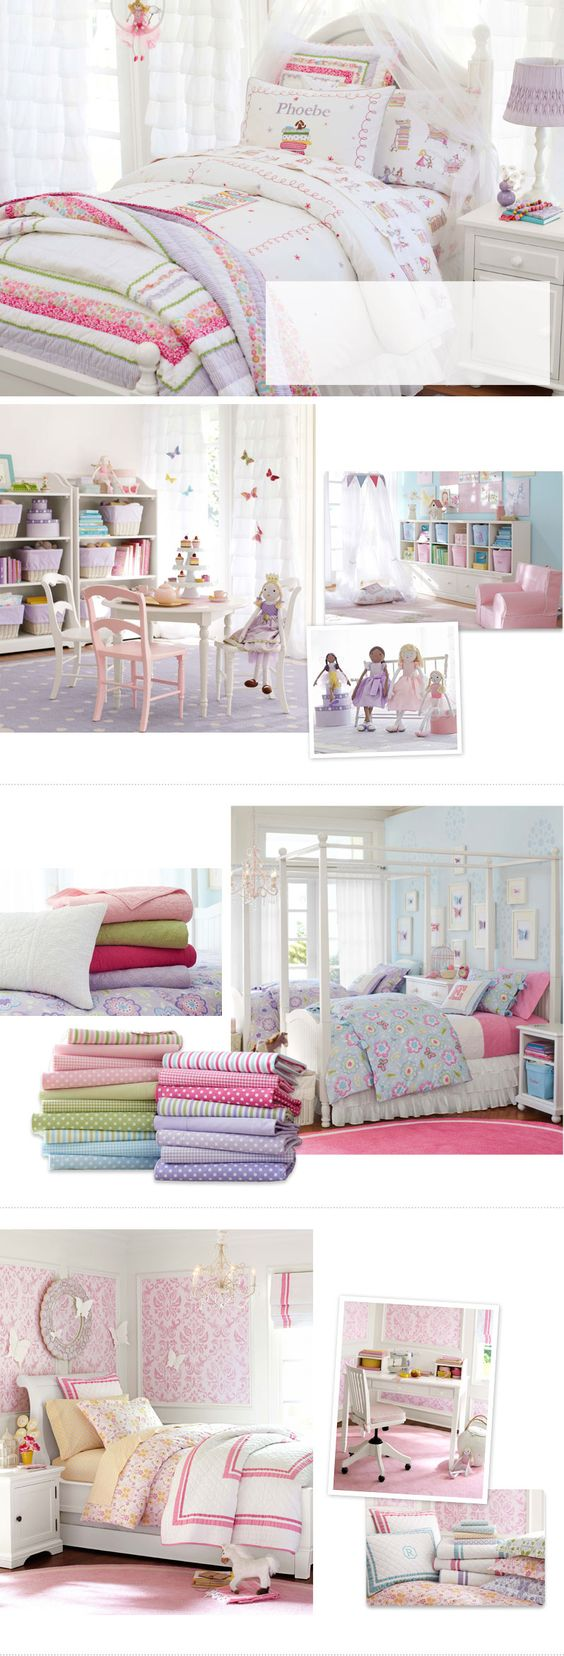 Girls Bedroom Ideas & Girls Room Ideas | Pottery Barn Kids - lovely bedding: